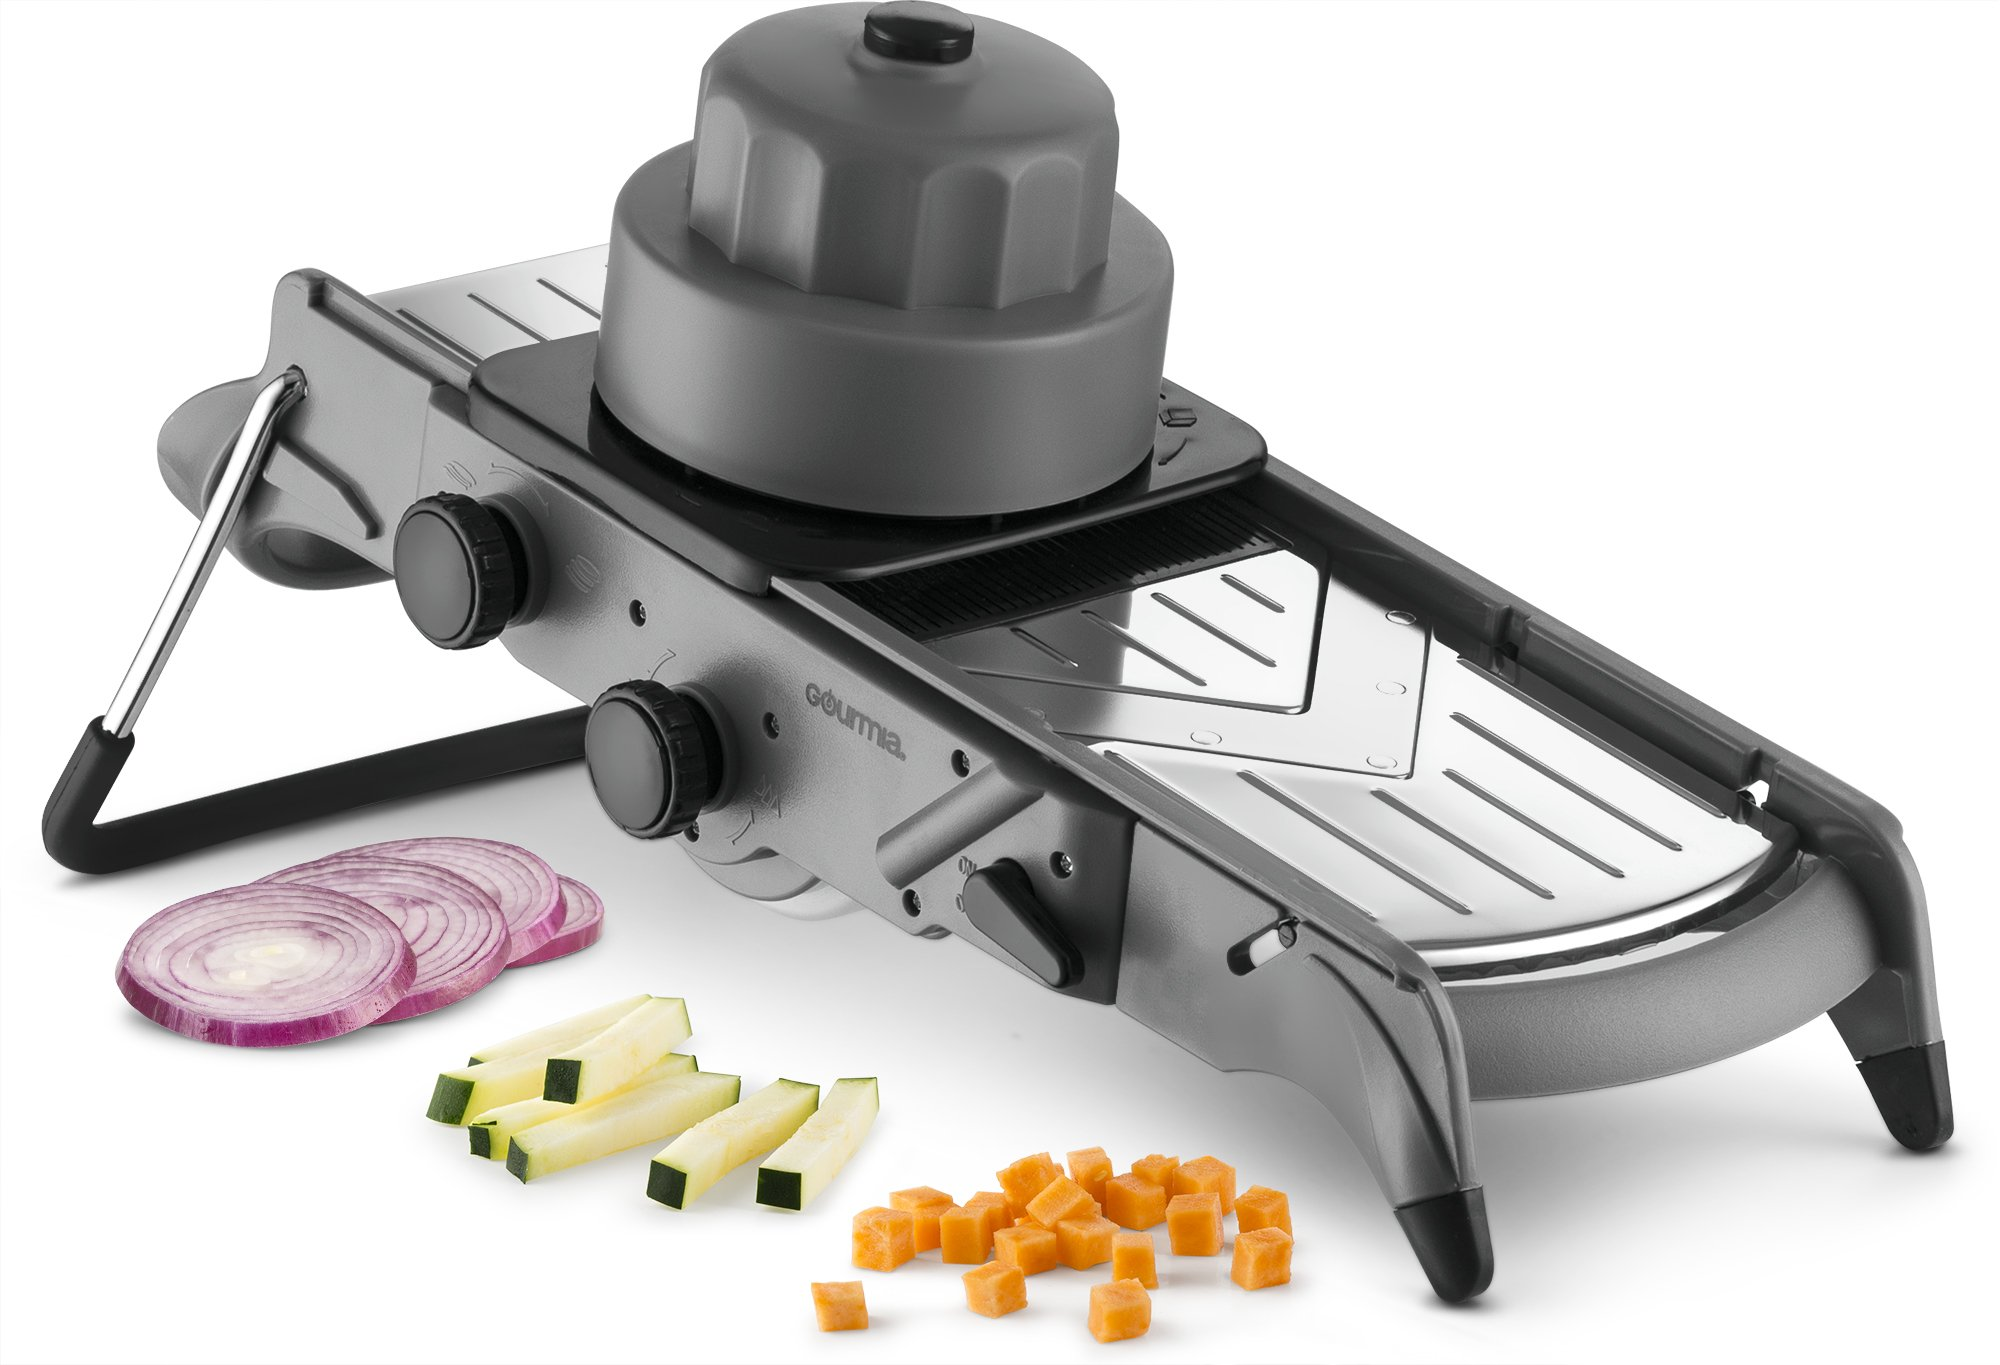 Gourmia GMS9625 Mandolin Slicer And Dicer–All In One V Blade For Julienne Slicing and Dicing- Adjustable Thickness – Stainless Steel Blades-Angled Stand For Easy Chopping BPA Free, Dishwasher Safe